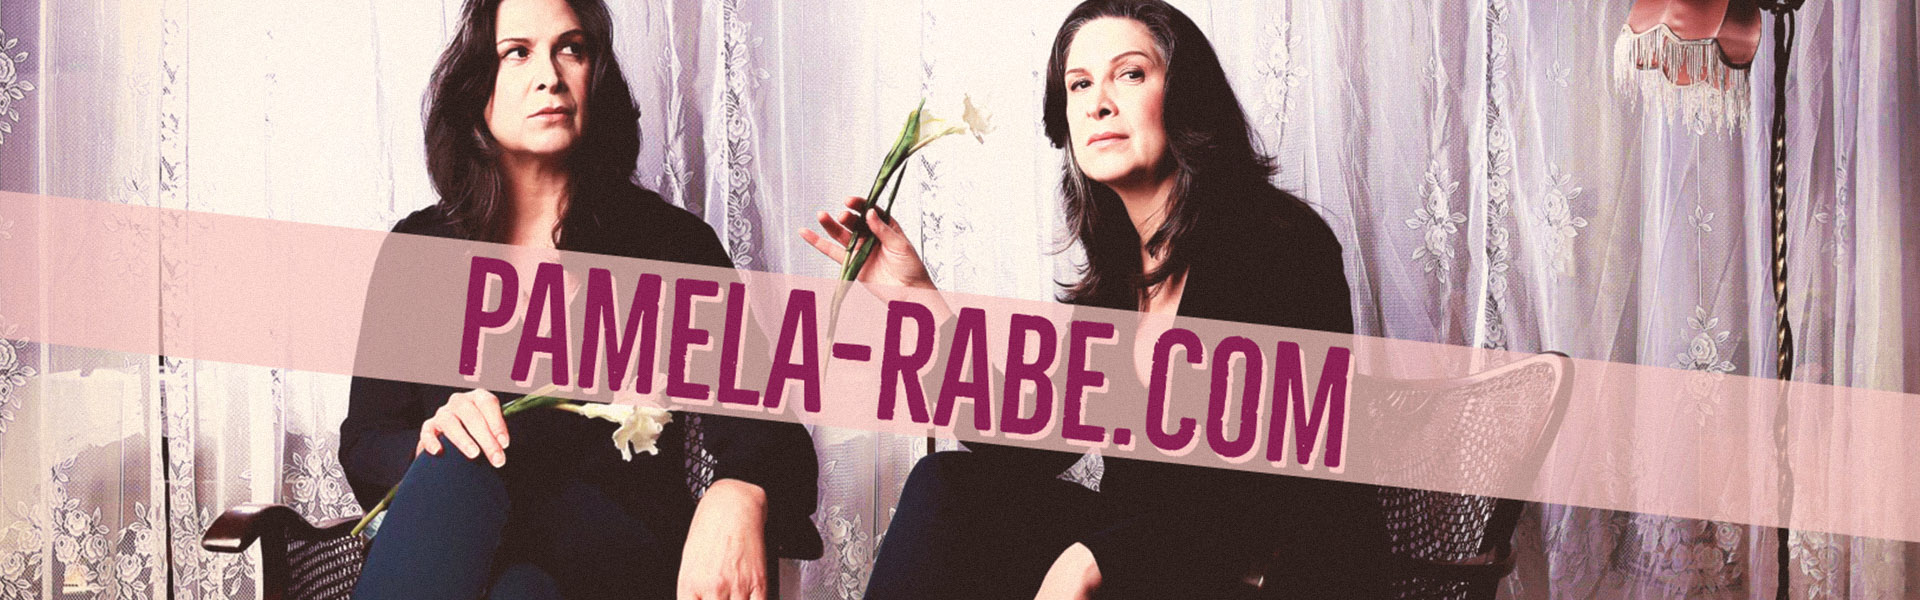 Pamela-Rabe.com | Original Photos by Louise Kennerly